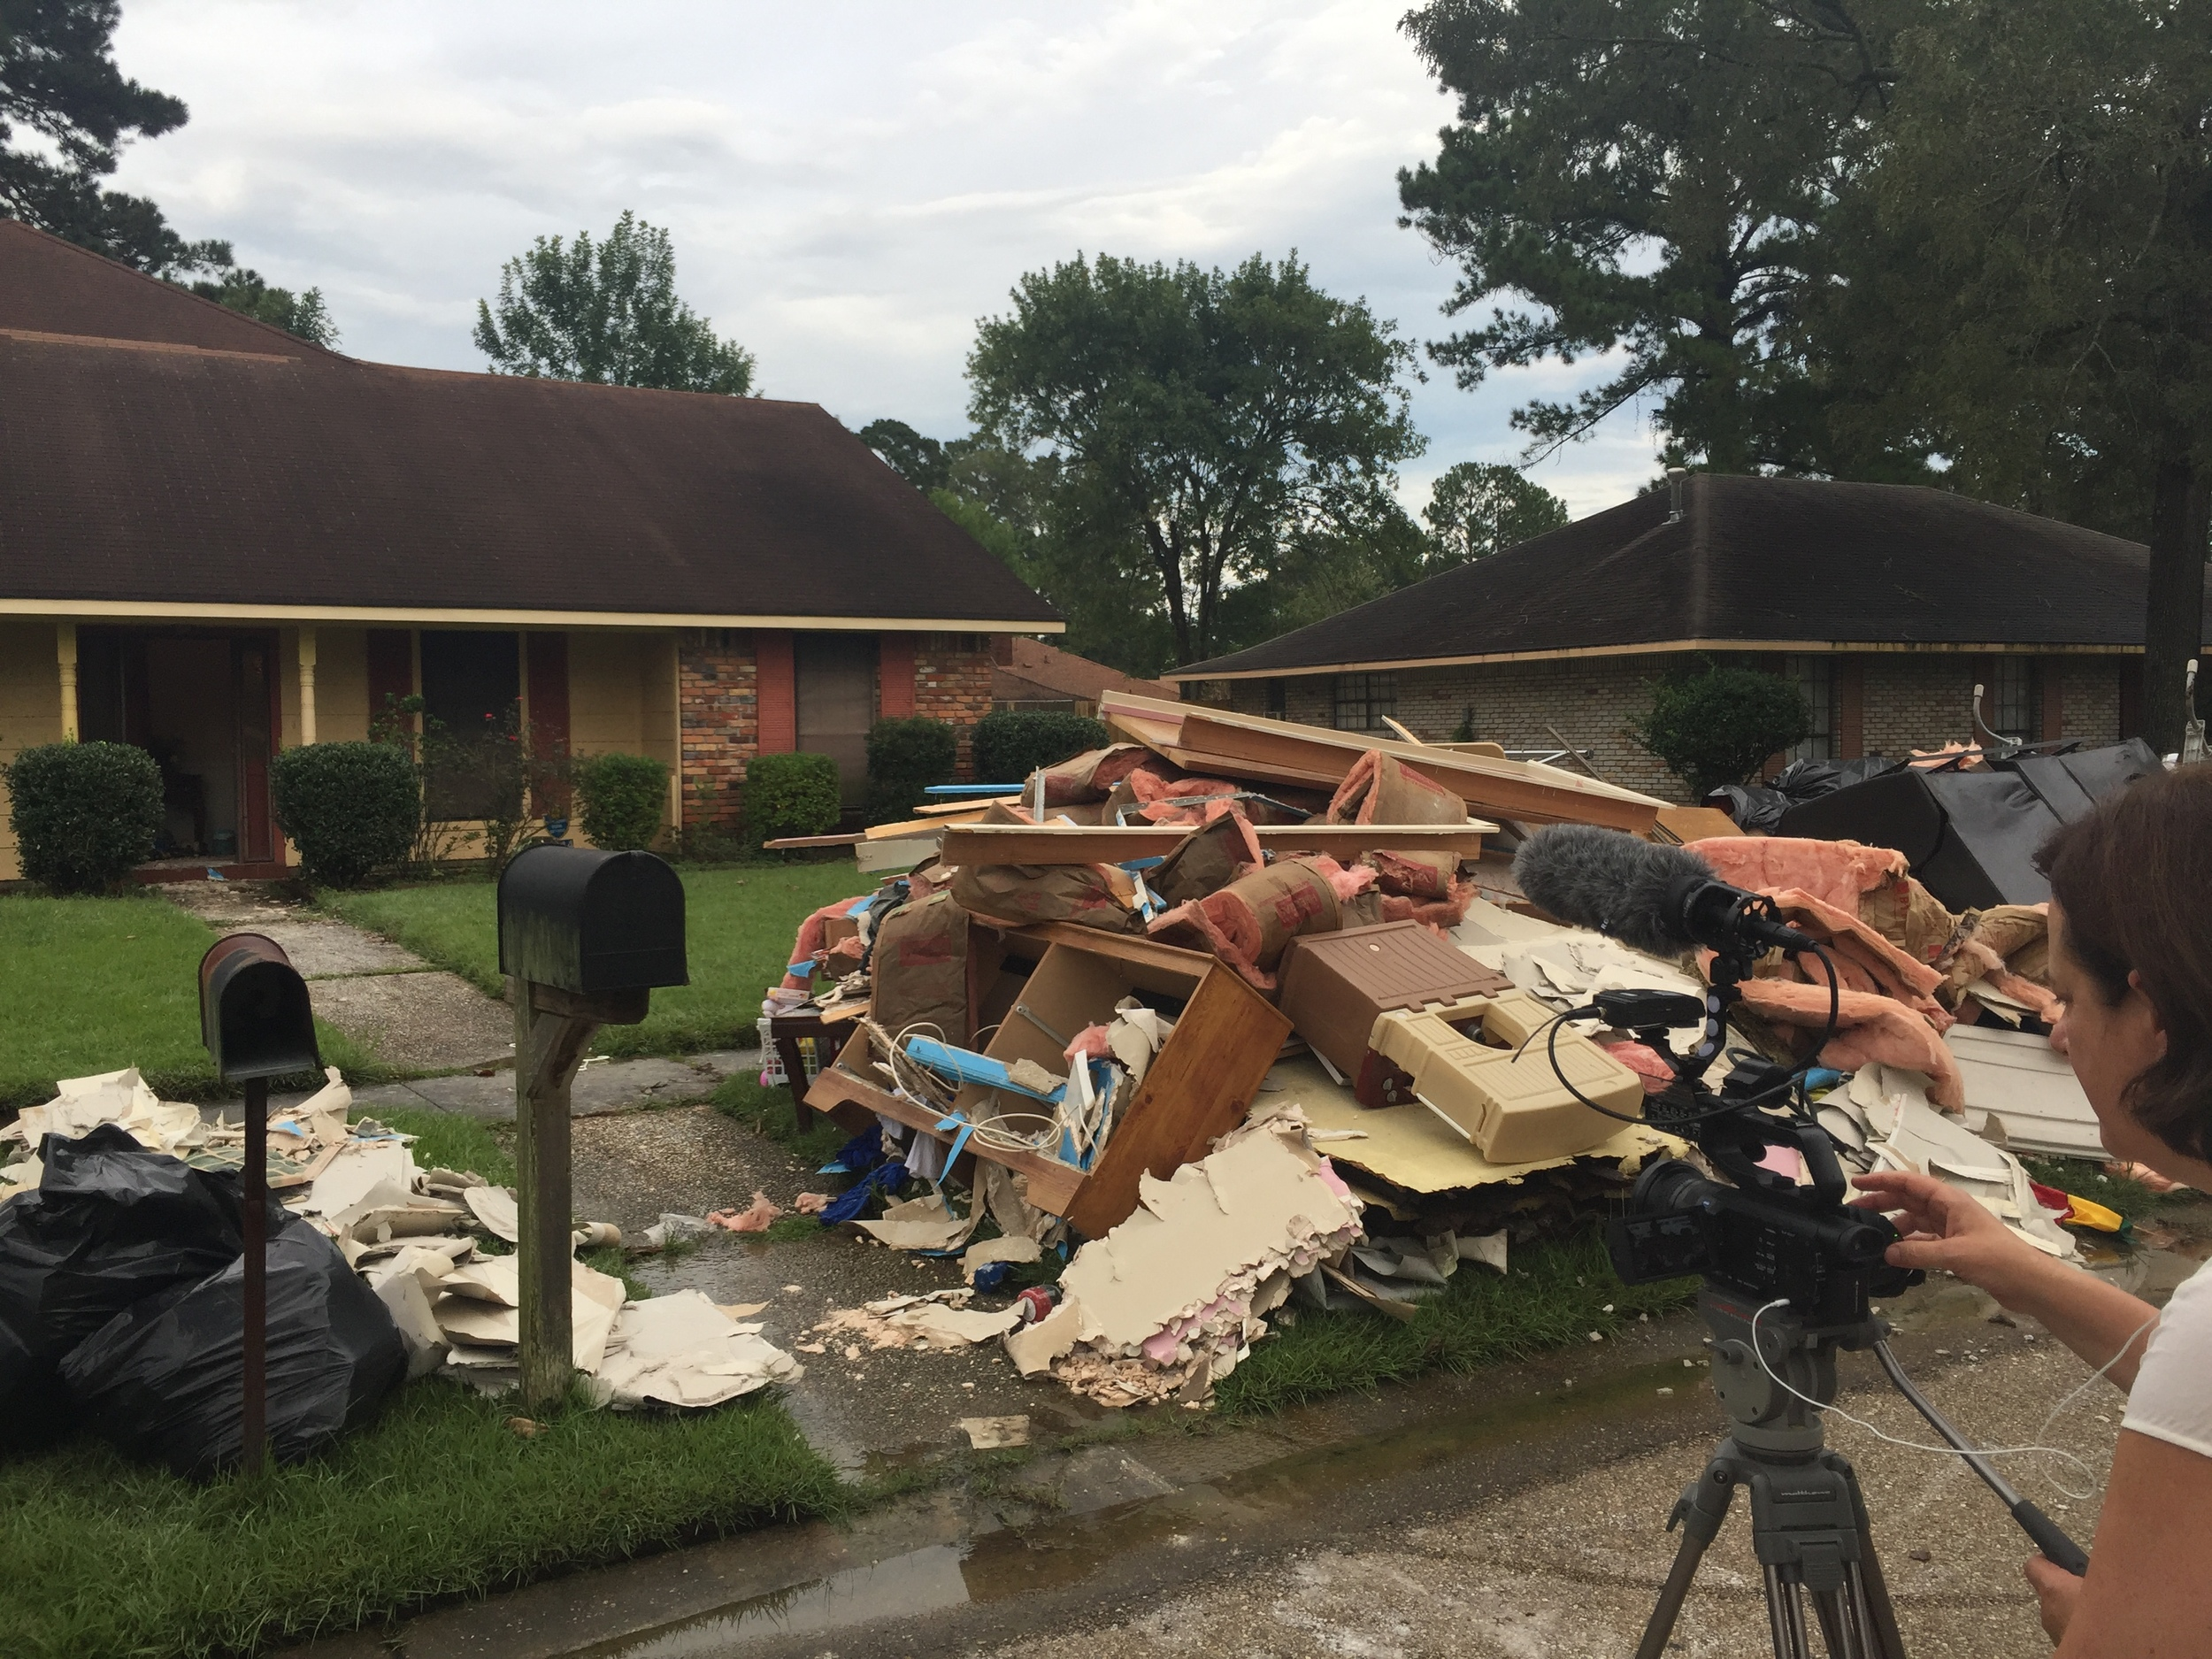 Tameka Roby's home was gutted after this month's flooding destroyed most –if not all –of her belongings. She is gracious and let us film there.